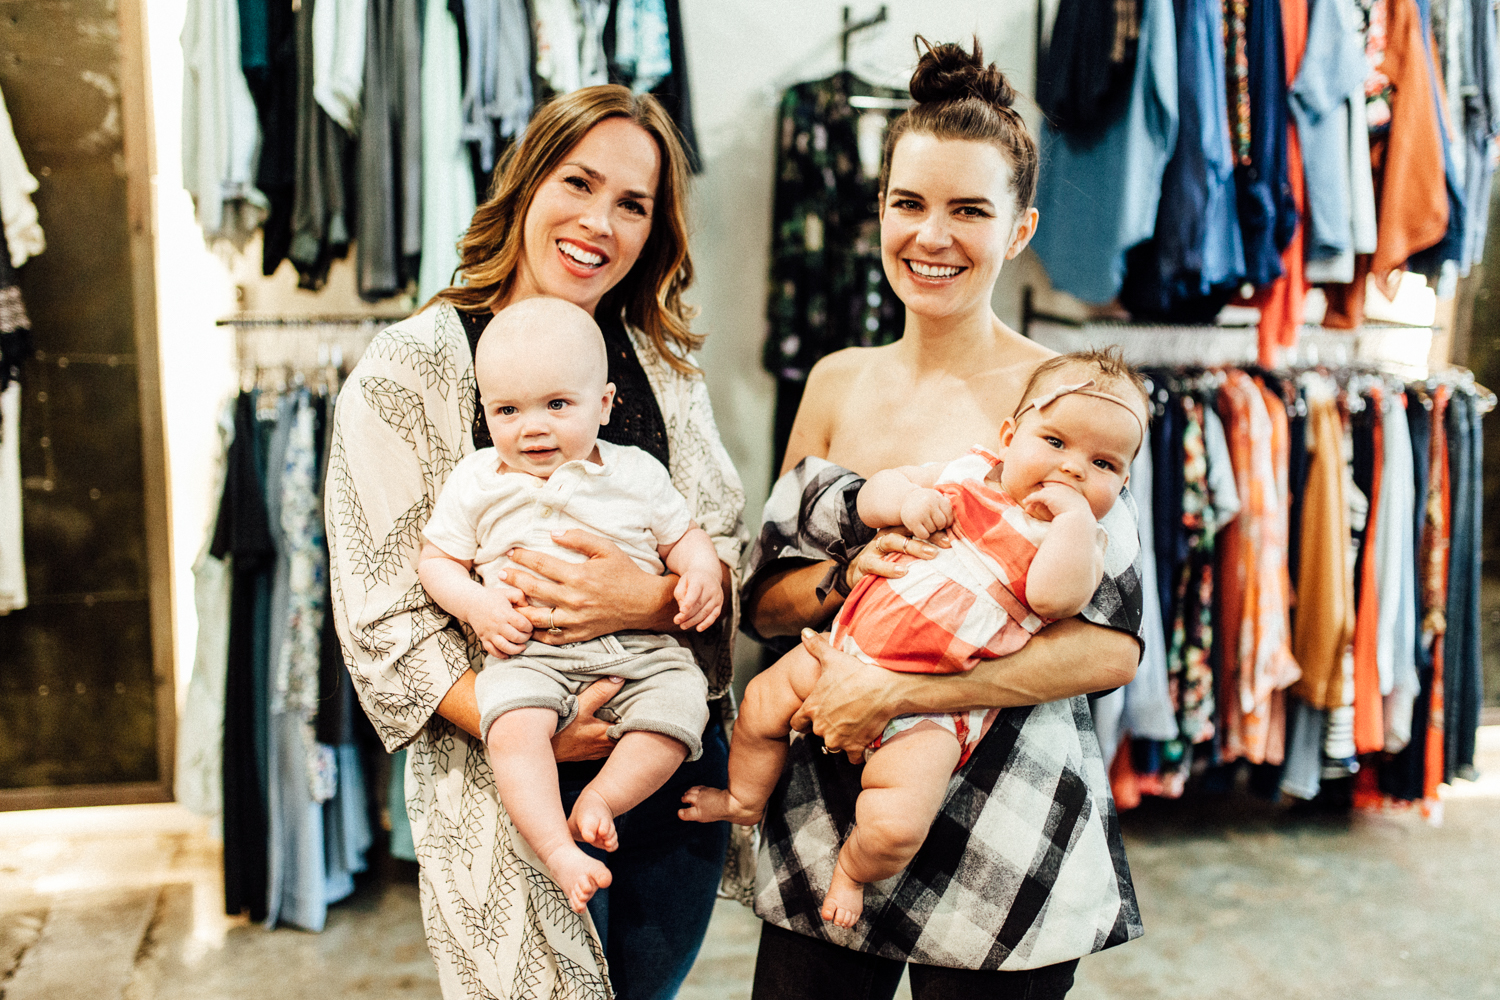 Working-moms-and-babes-blaire-isleib-and-kristen-doyon-of-flight-boutique-park-city-utah